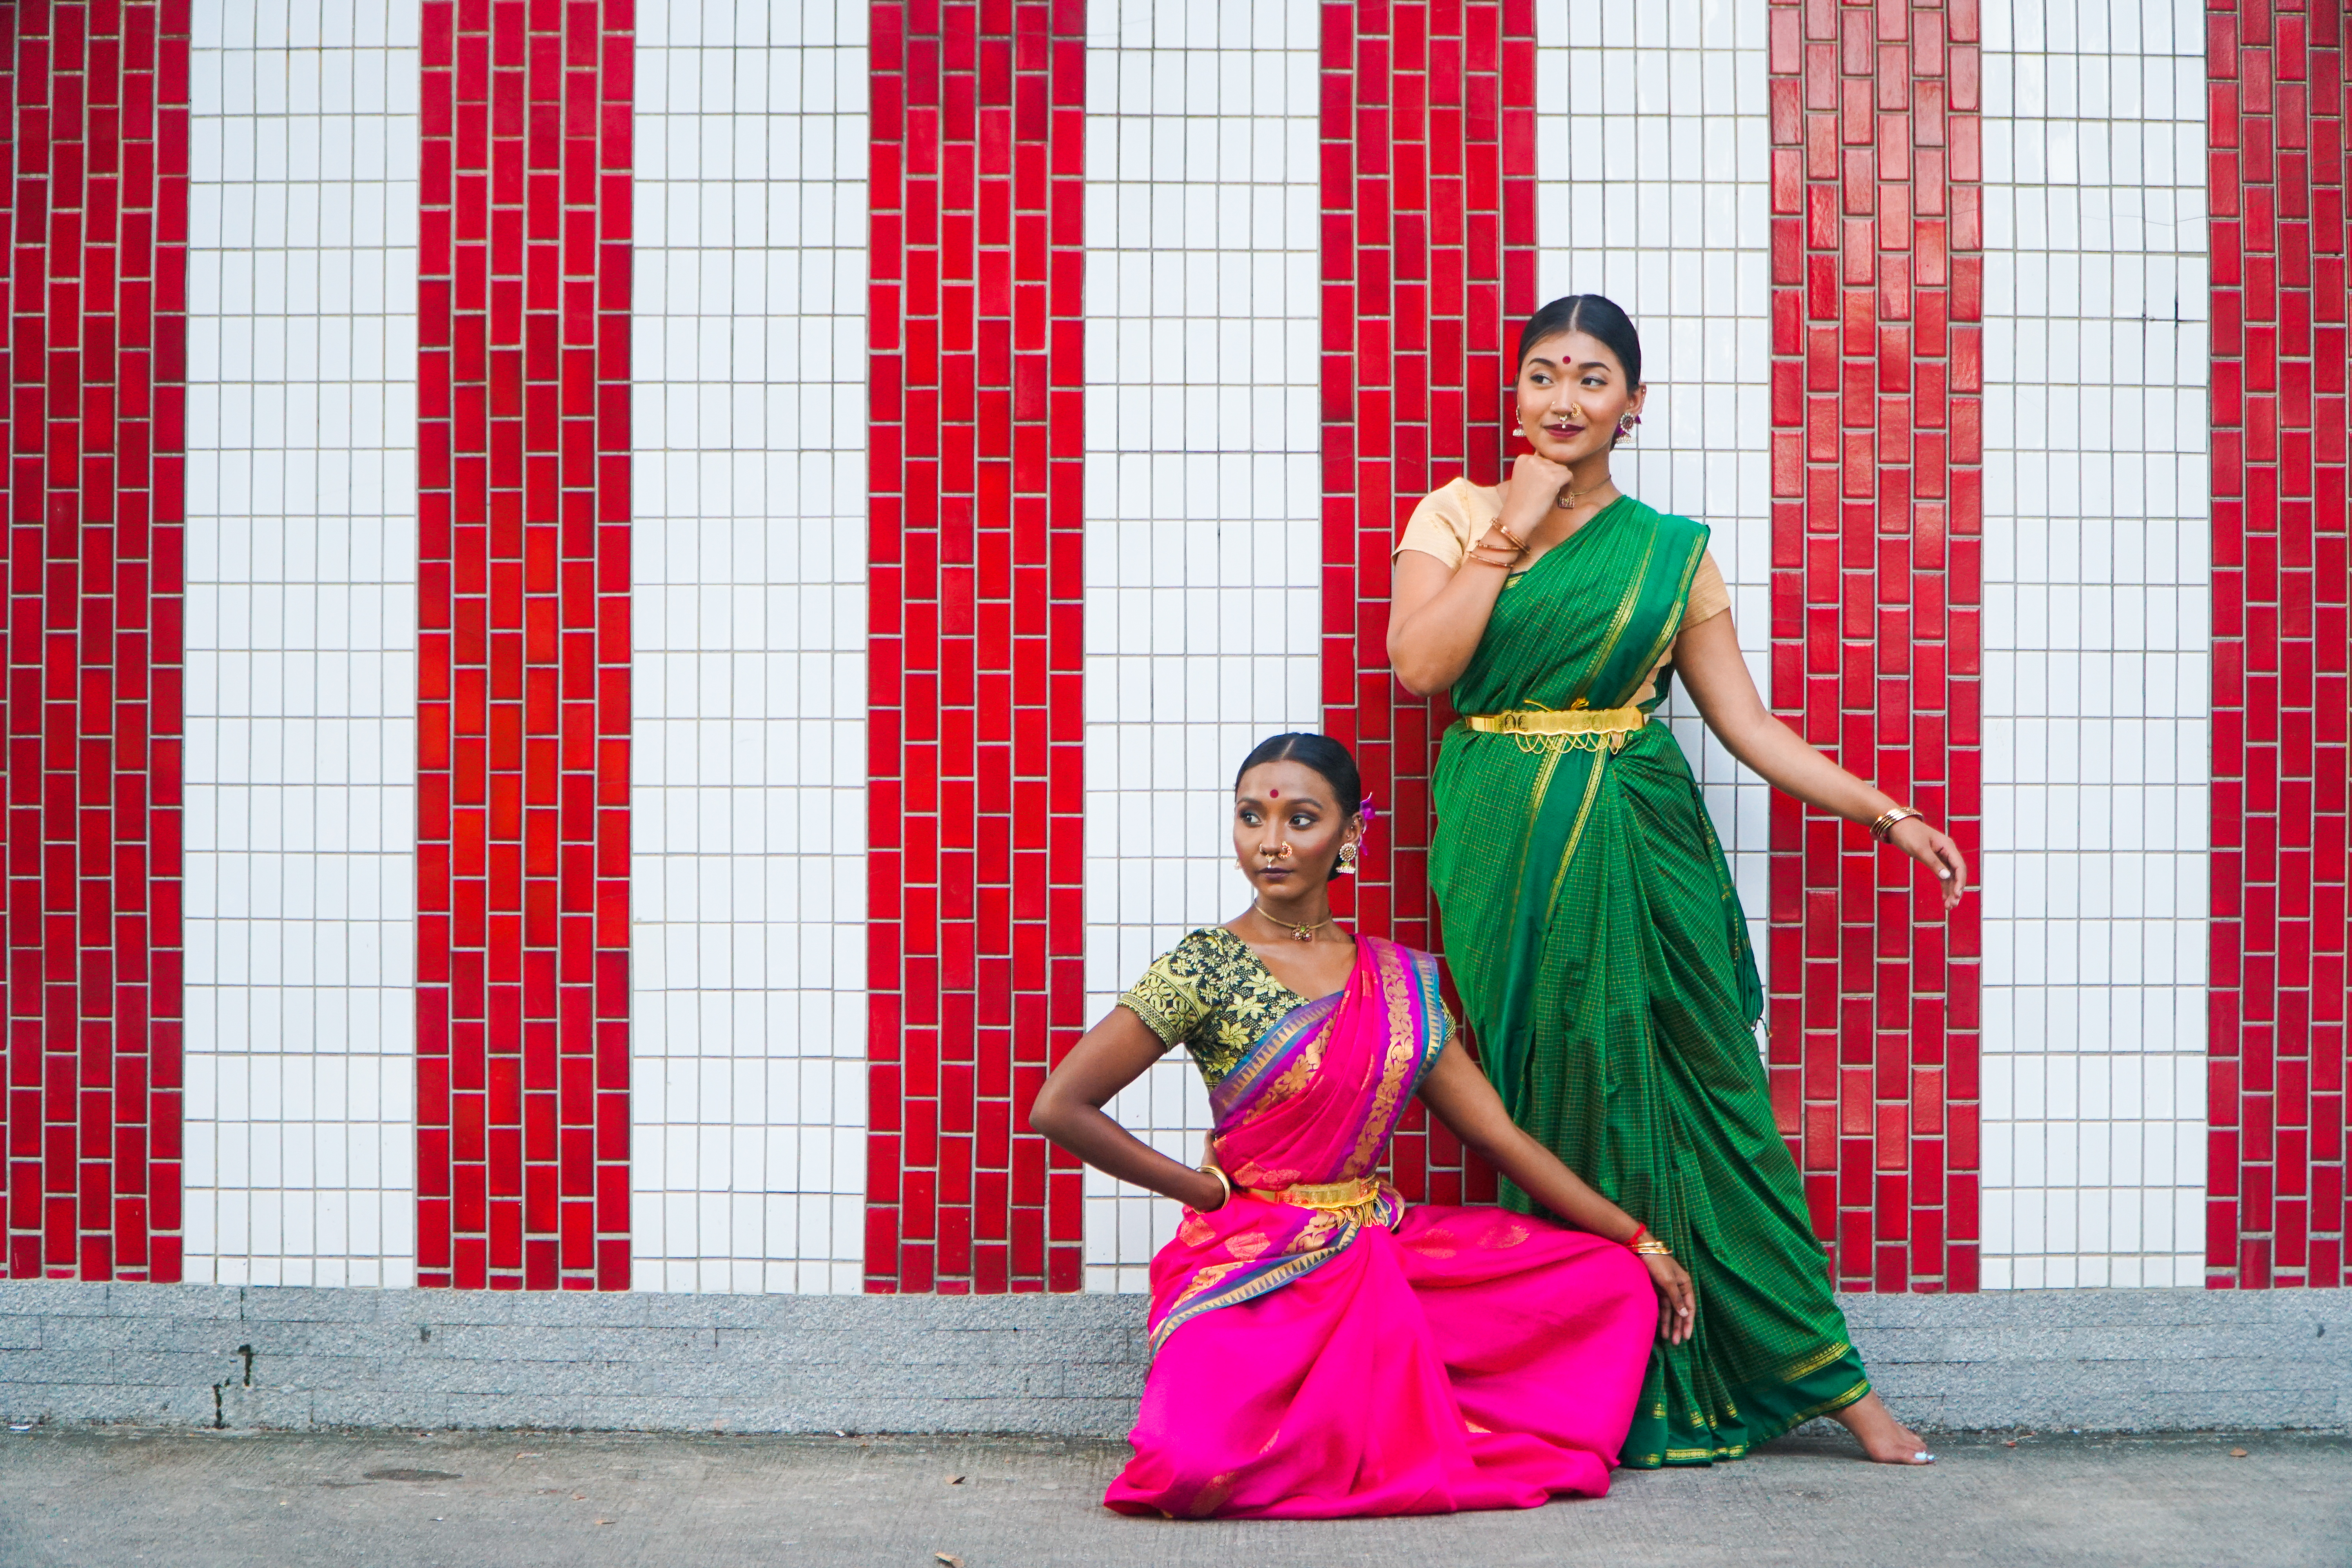 The traditional Bharatnatyam repertoire is not likely to change in the near future